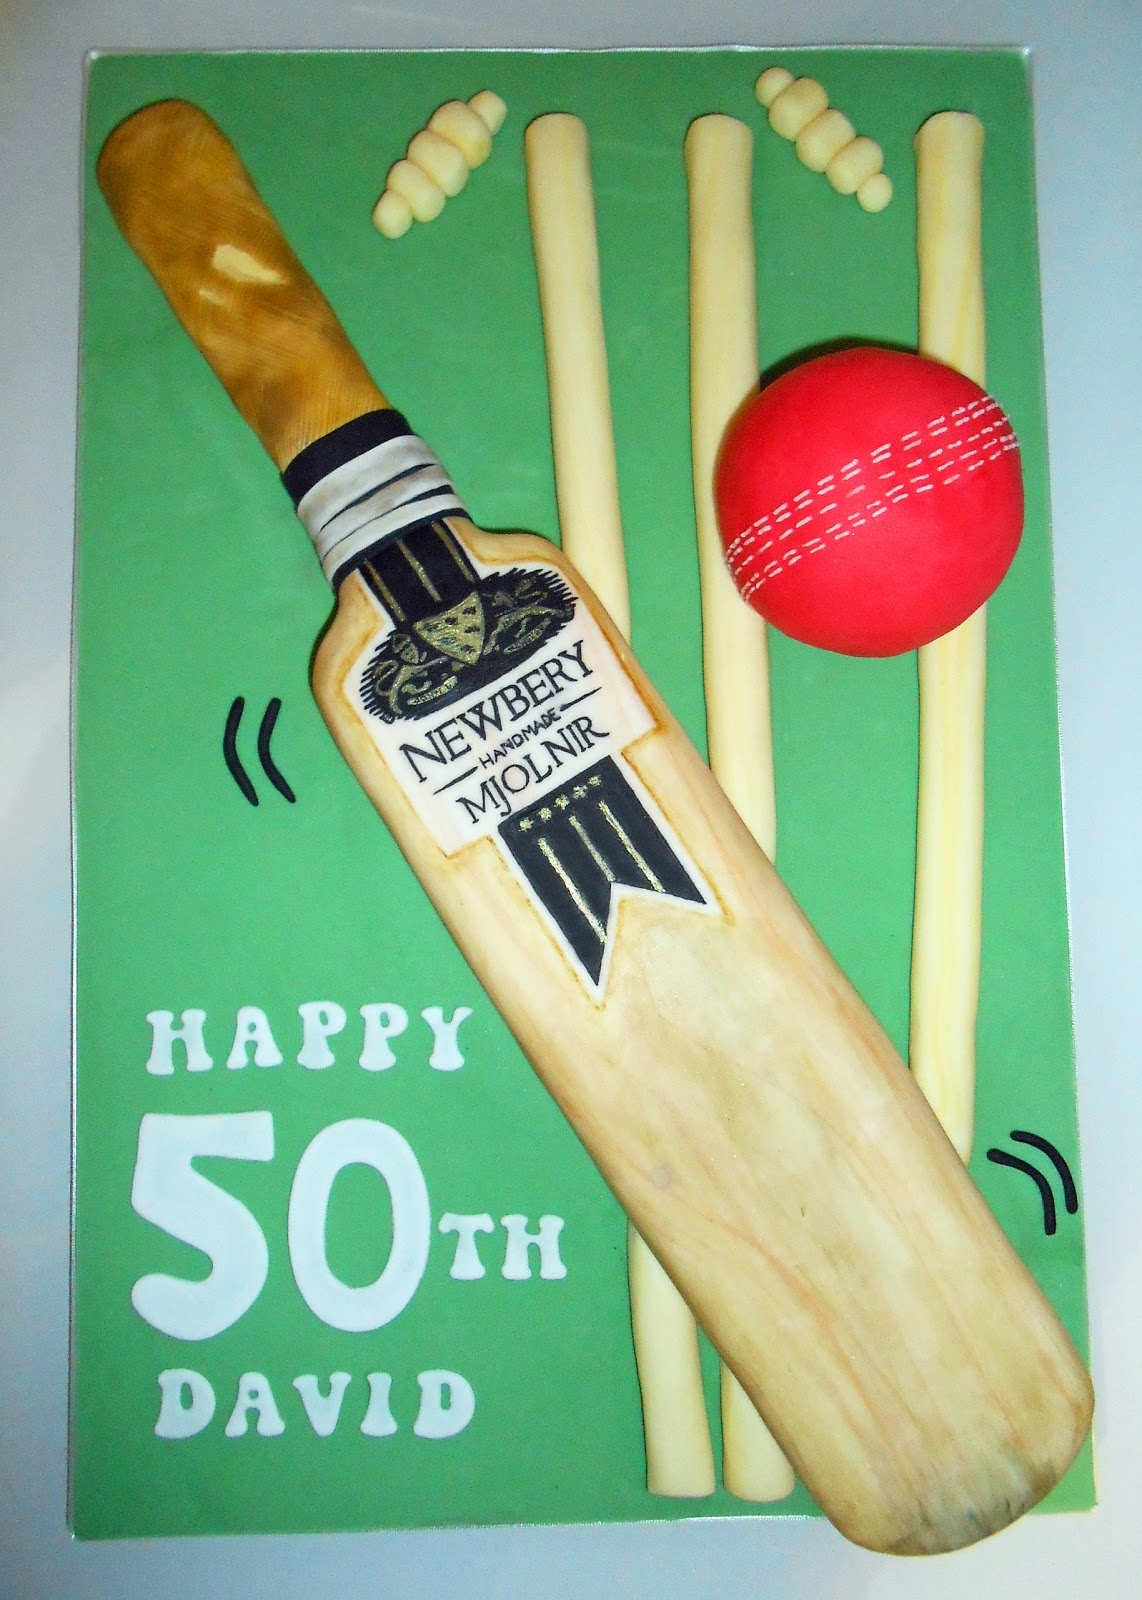 Cricket Bat Cake Images : The Coloured Bubble Cakery: Cricket Bat Cake